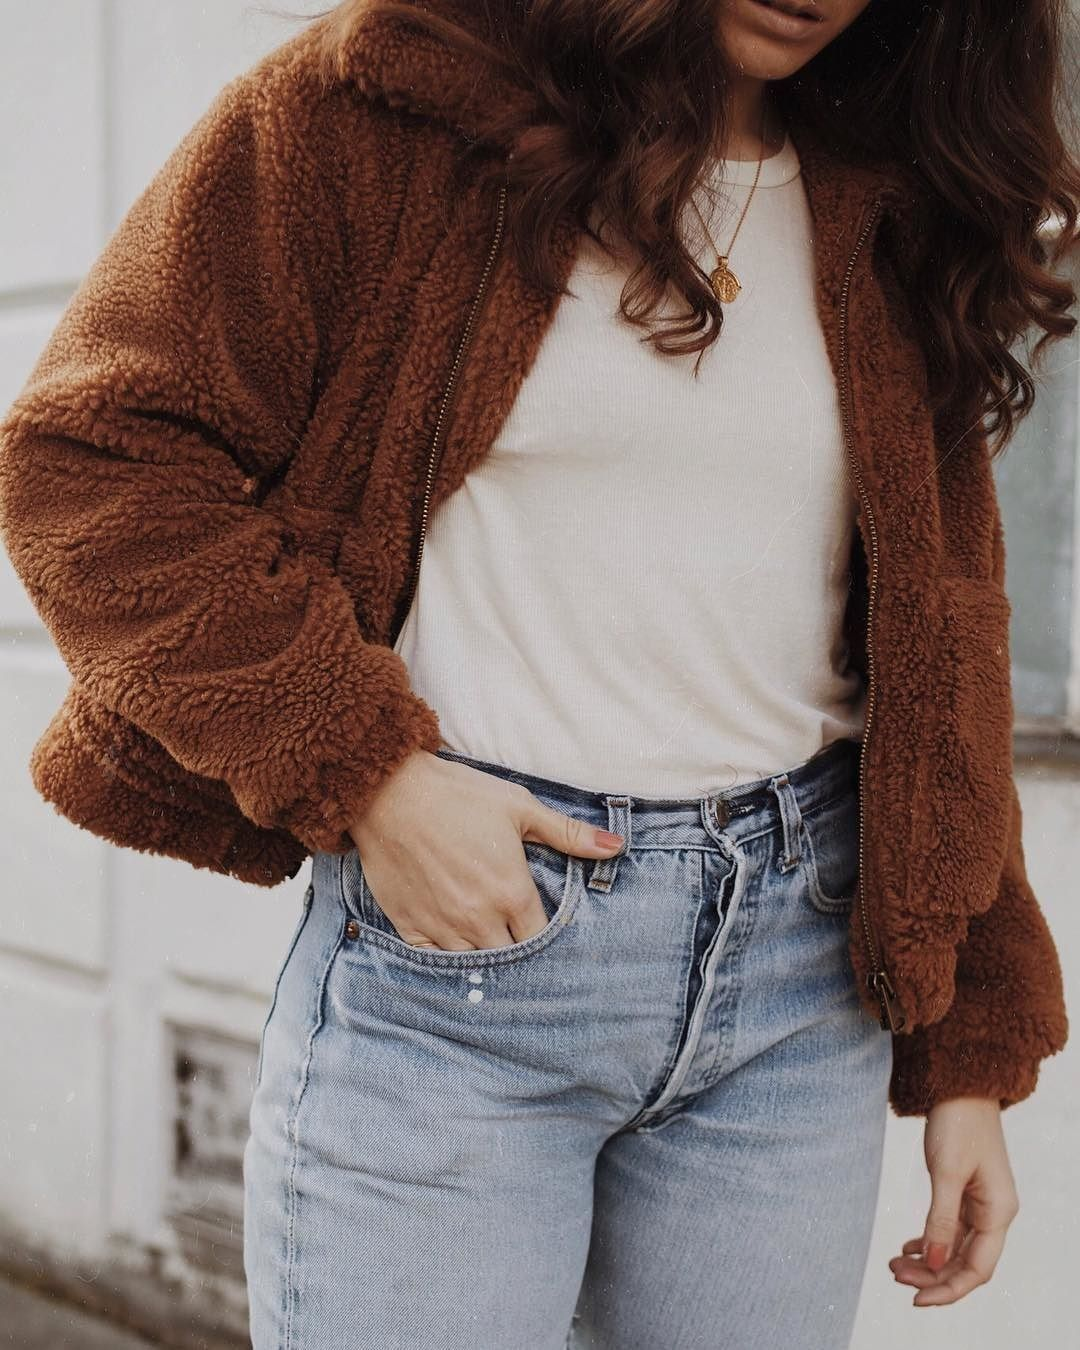 Uo Light Brown Teddy Cropped Jacket Cuddle Material Pinterest